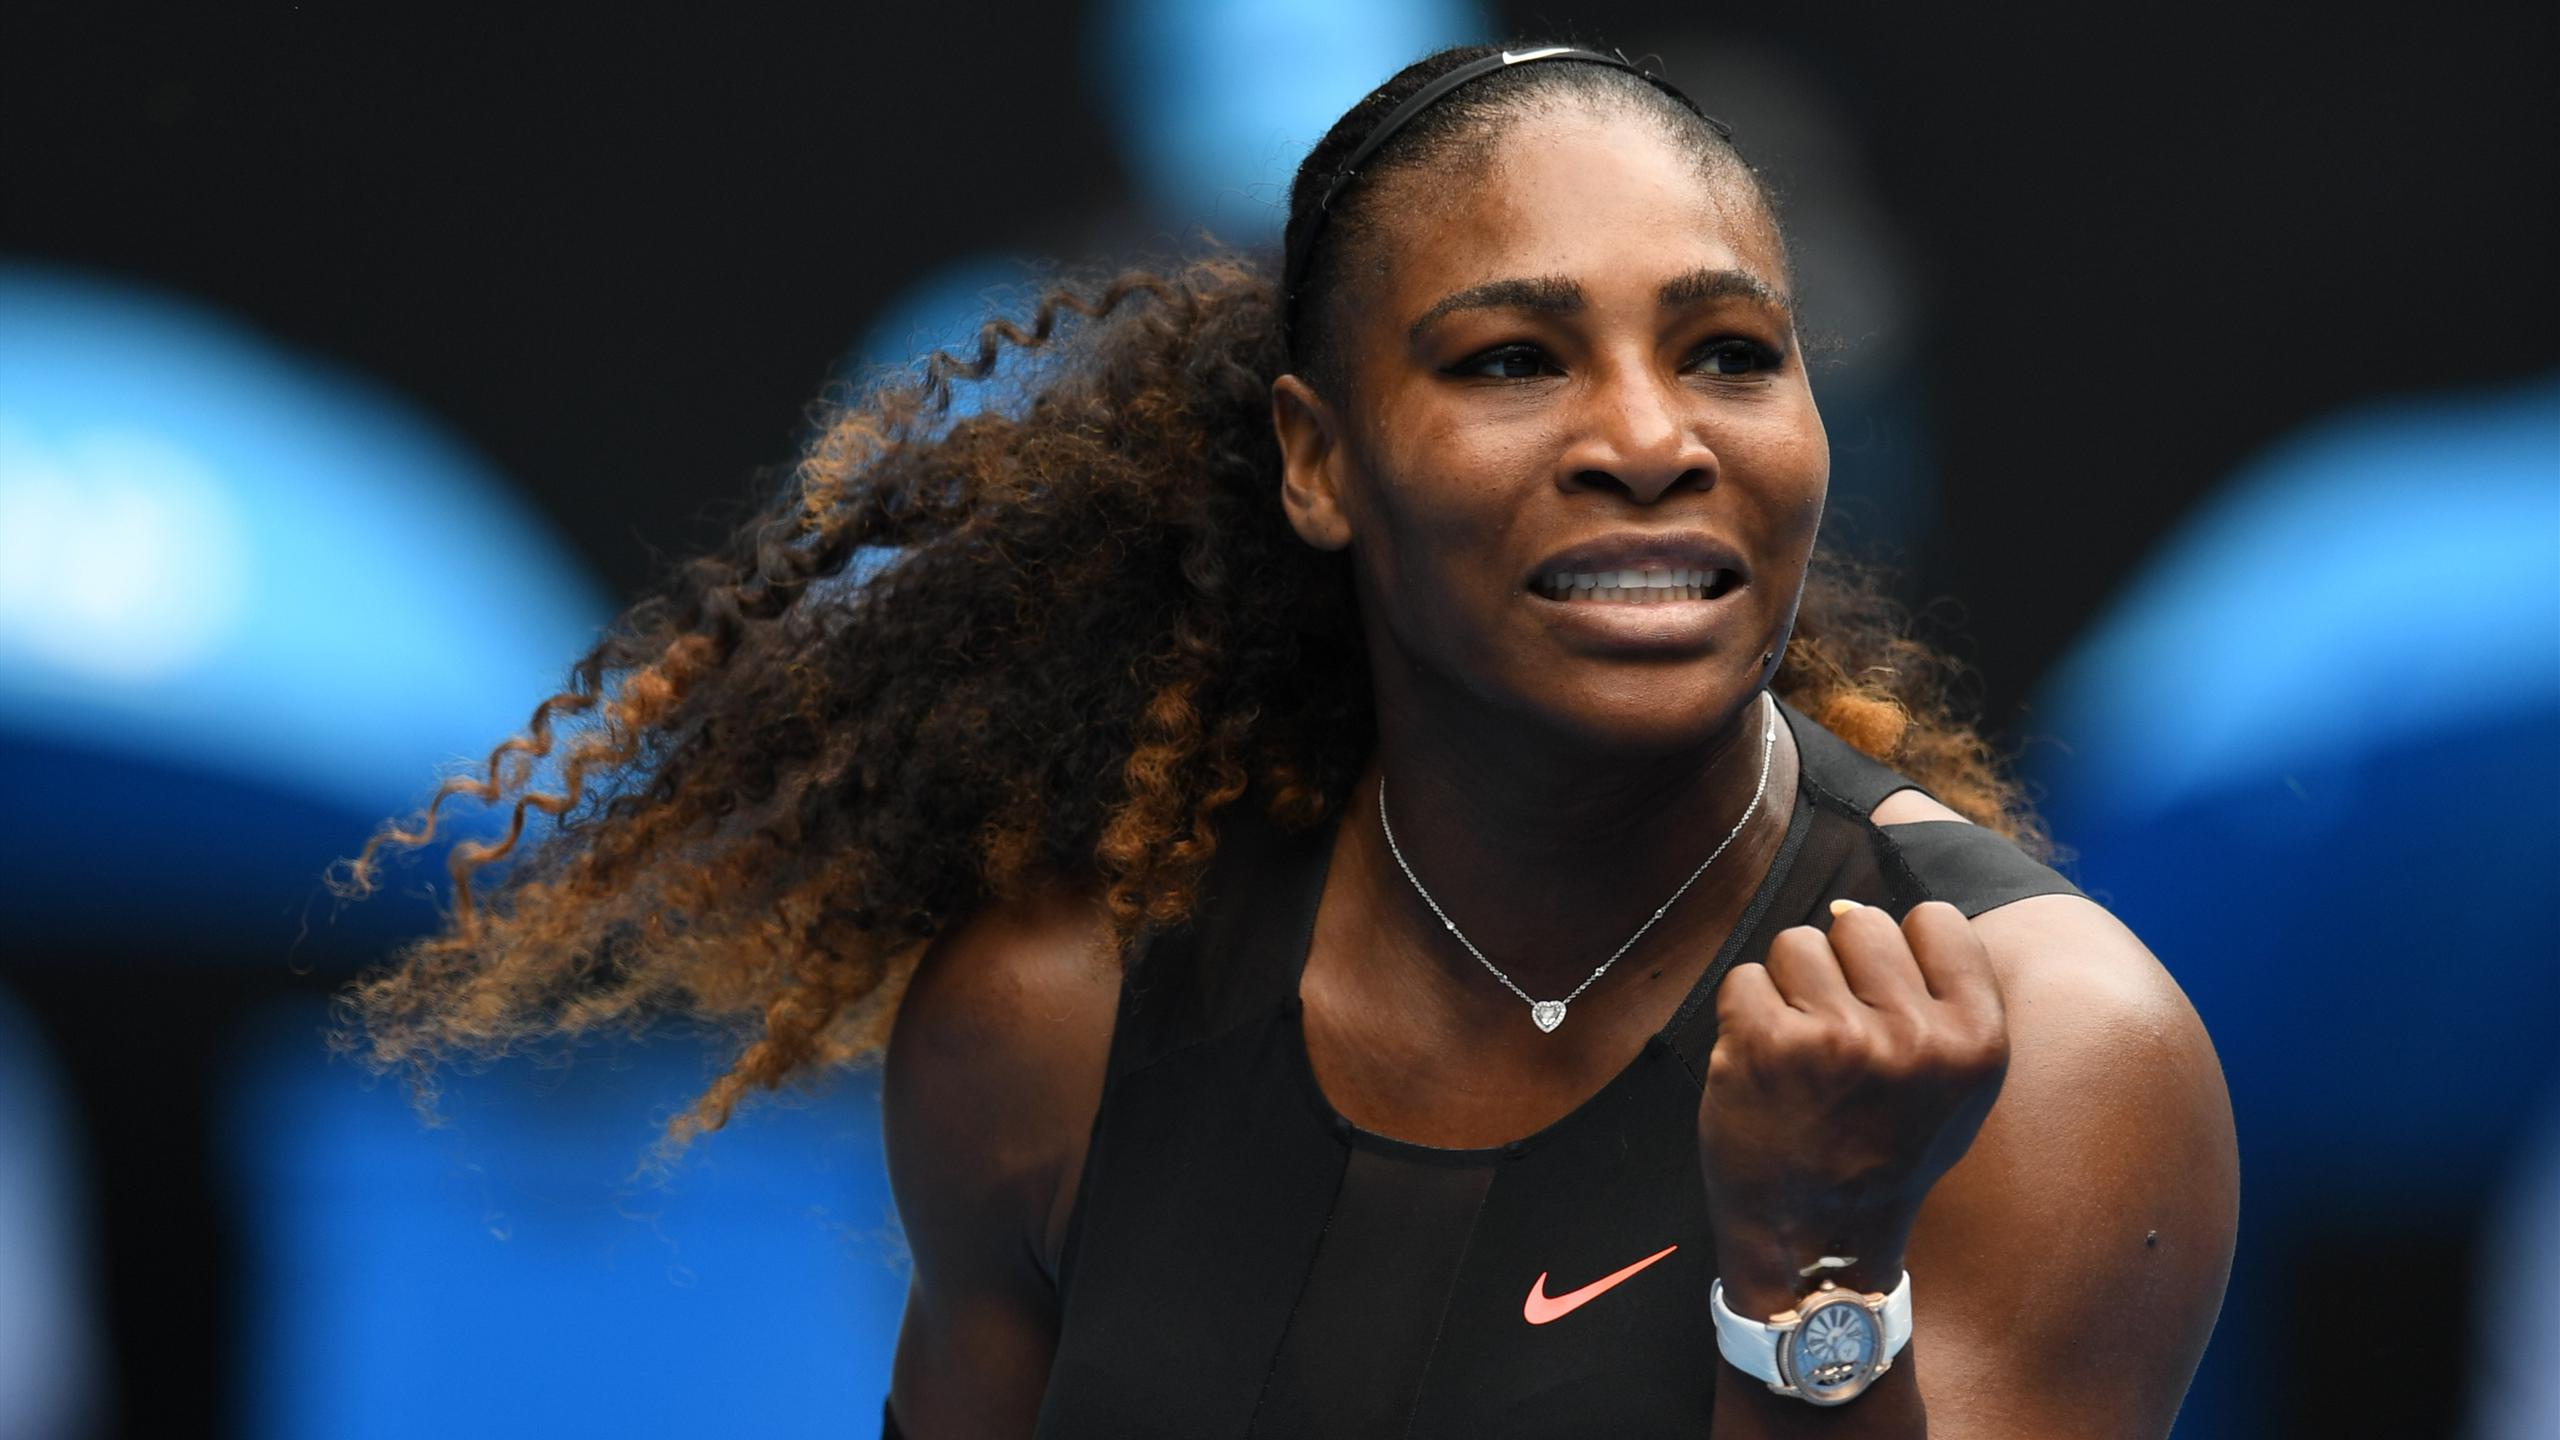 Serena Williams of the US reacts after a point against Switzerland's Belinda Bencic during their women's singles match on day two of the Australian Open